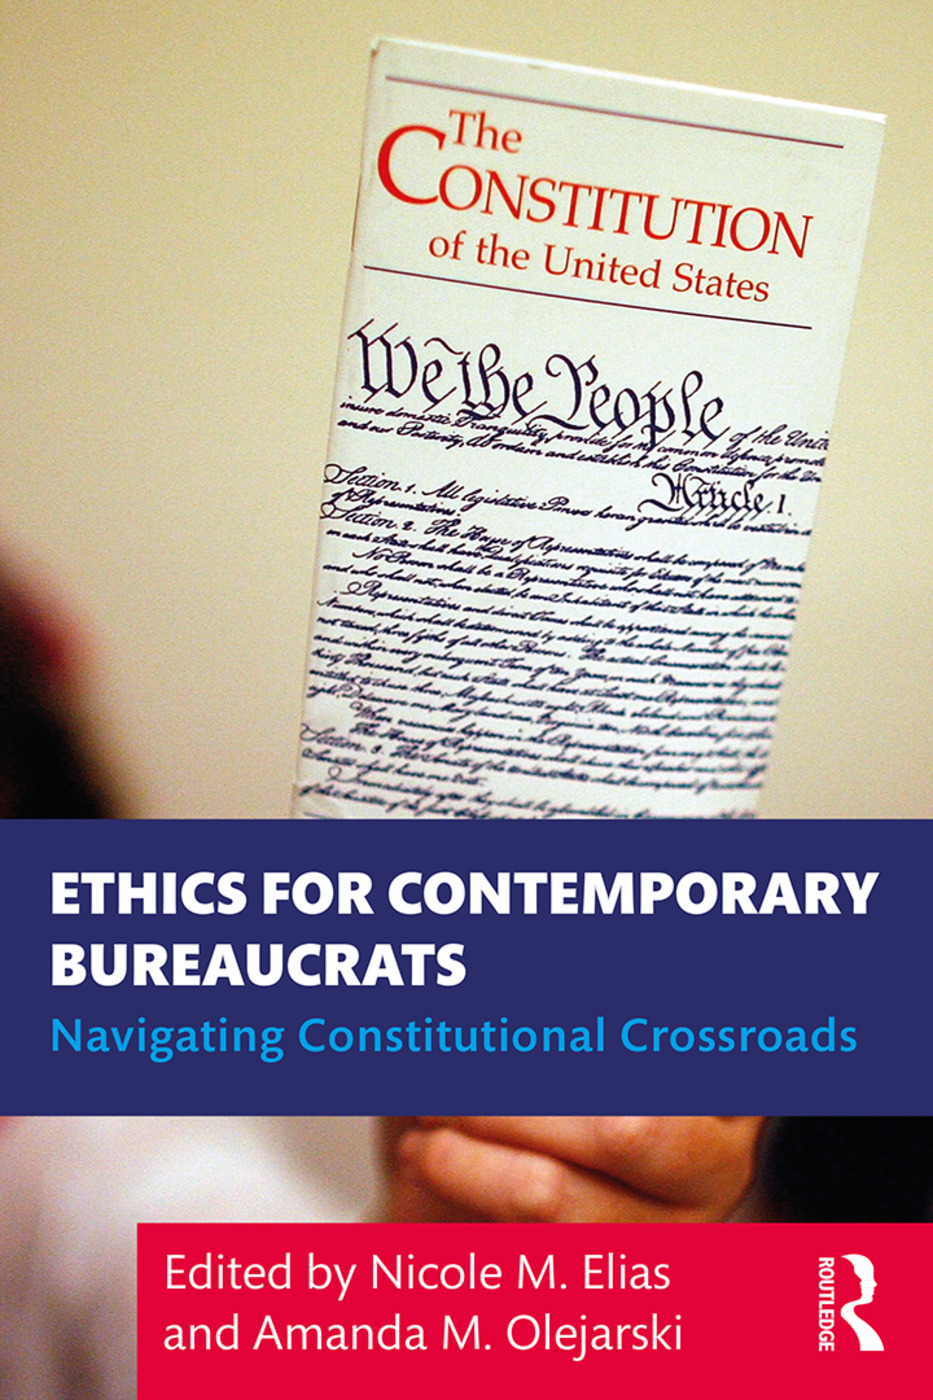 Ethics for Contemporary Bureaucrats: Navigating Constitutional Crossroads book cover